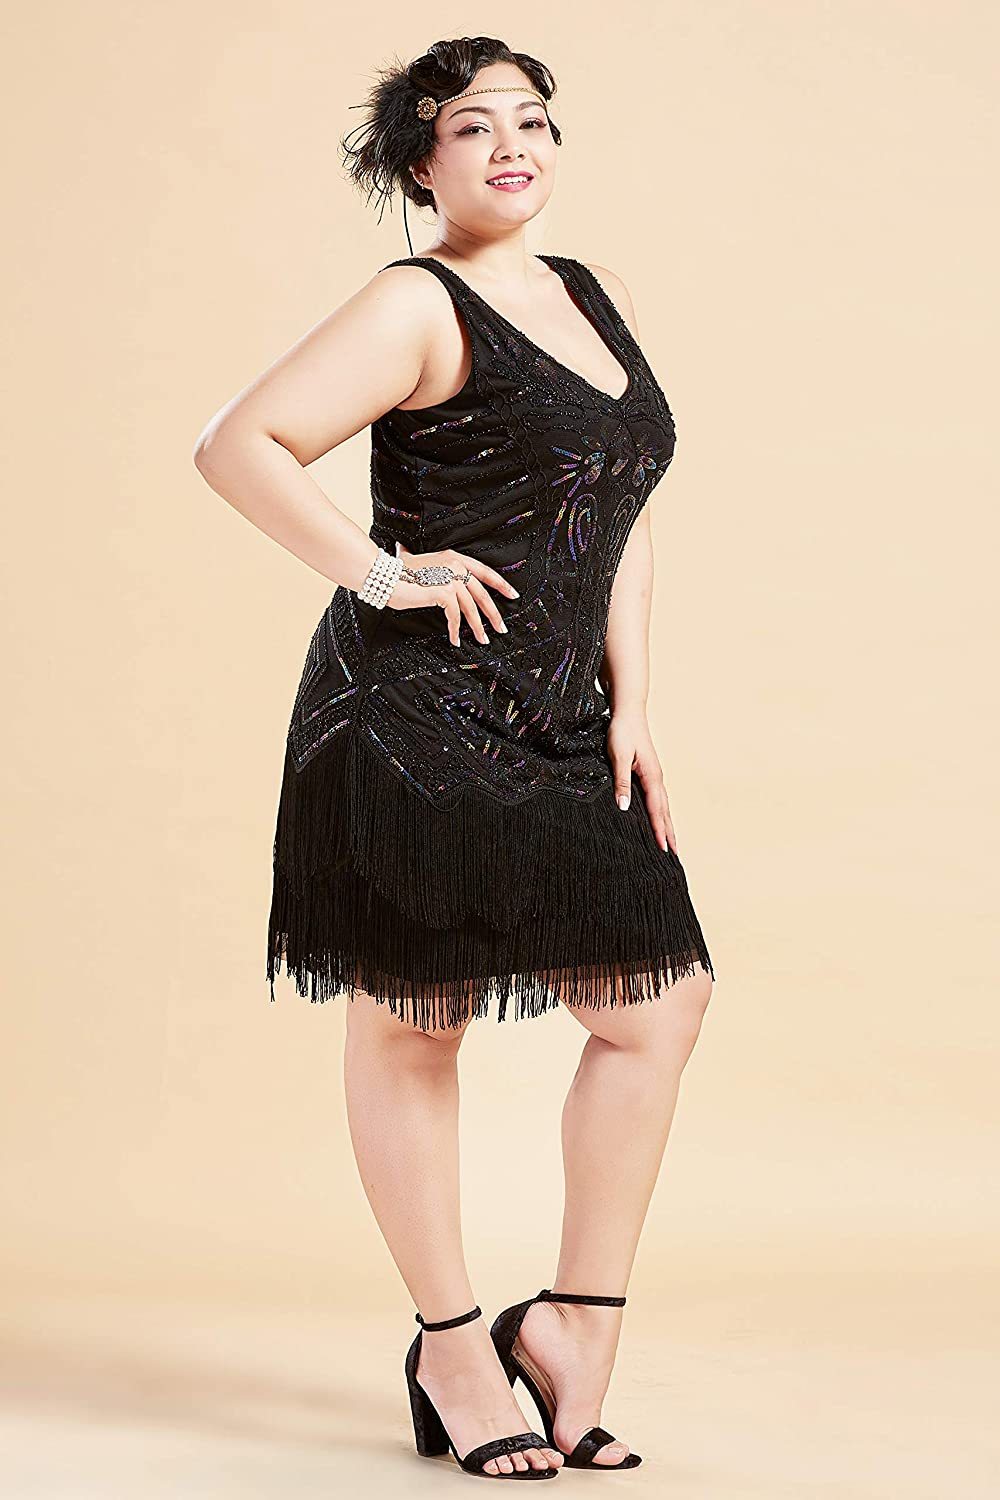 1920s Plus Size Flapper Dresses, Gatsby Dresses, Flapper Costumes BABEYOND Womens Plus Size Flapper Dresses 1920s V Neck Beaded Fringed Great Gatsby Dress $40.99 AT vintagedancer.com